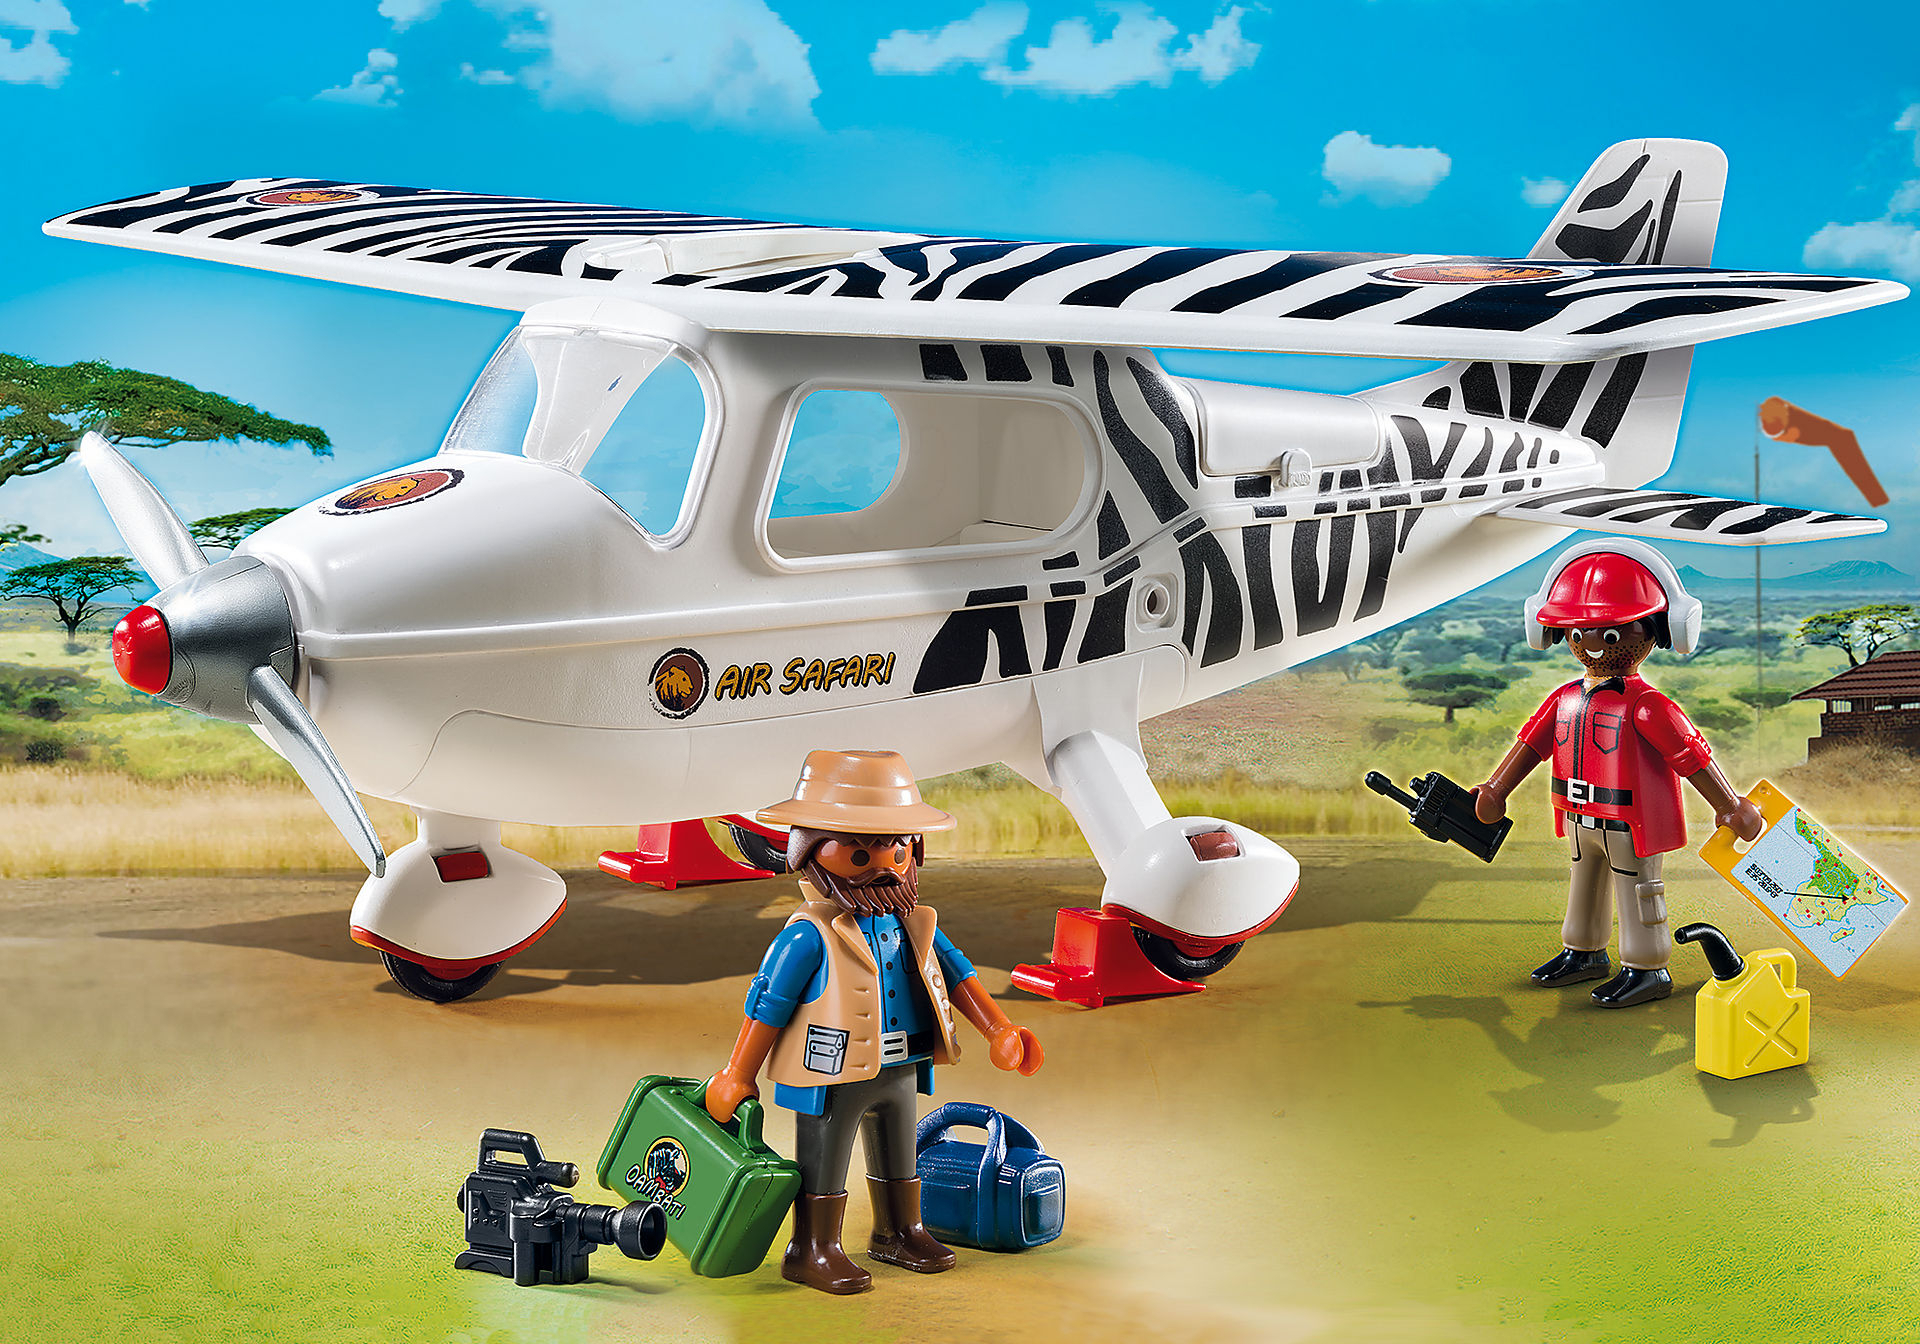 http://media.playmobil.com/i/playmobil/6938_product_detail/Aereo di avvistamento fly-safari